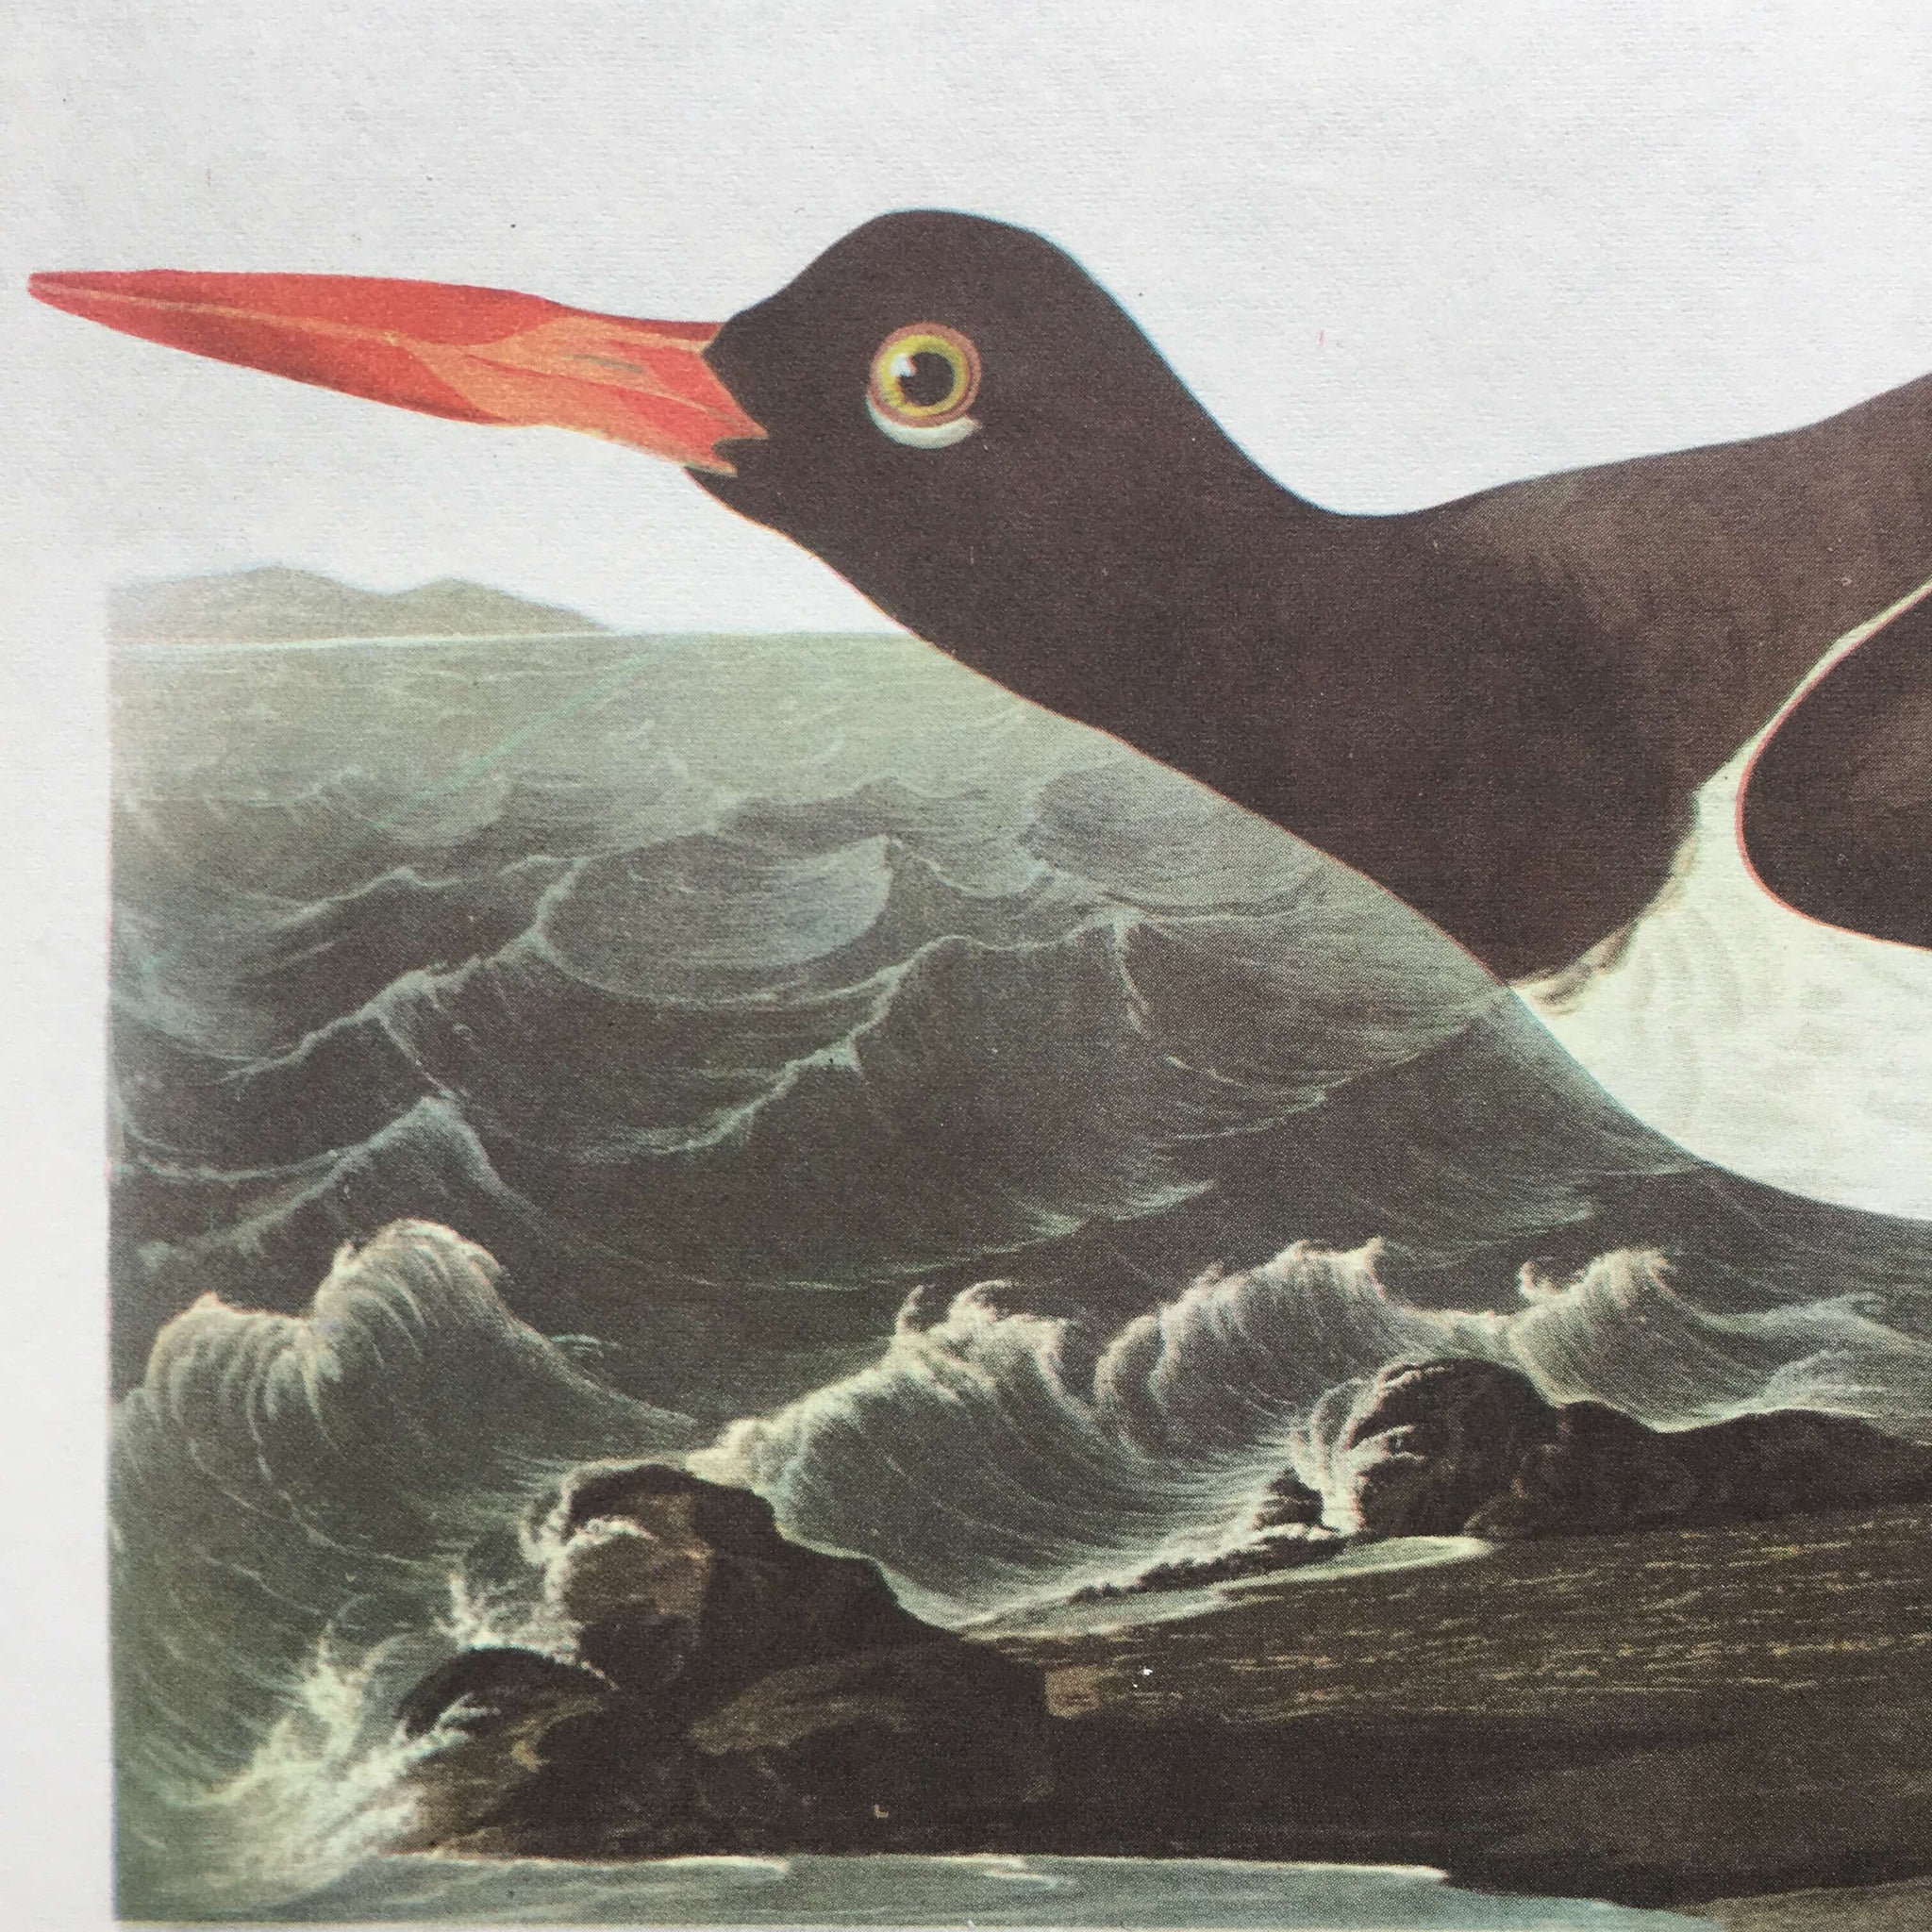 Vintage 1960s Seagull Bird Print Botanical - Kittiwakes & Oyster Catchers - John James Audubon